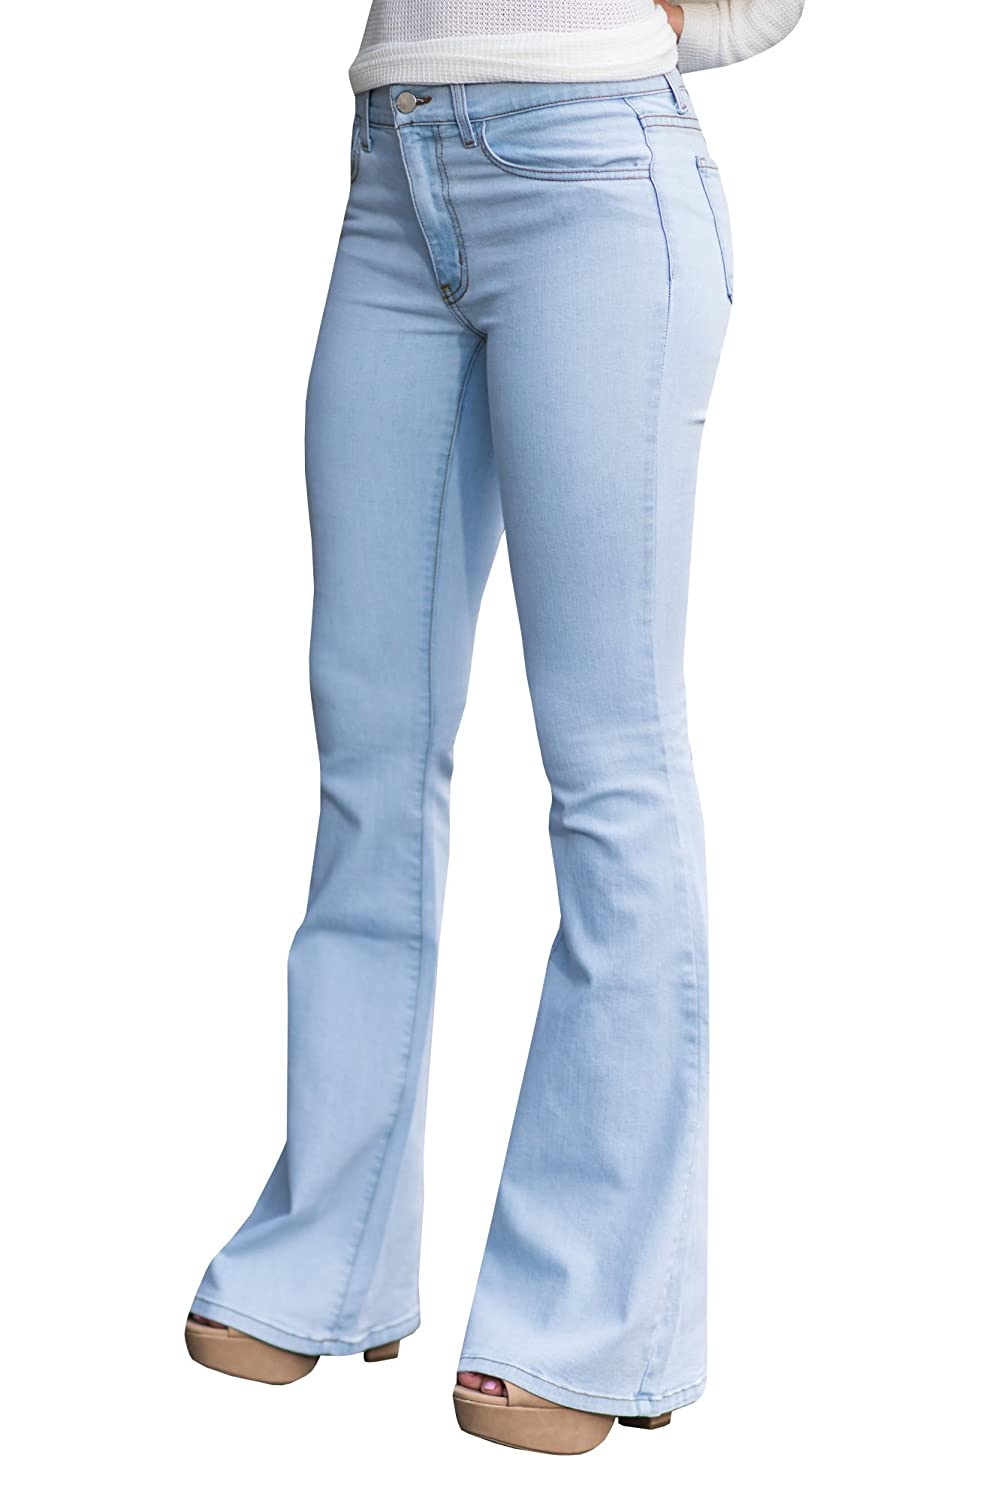 639b09607912f Younger-looking   Fashionable style  Syktkmx women s high waisted flare  jeans with elegant fashion element make you look younger and more sexy.